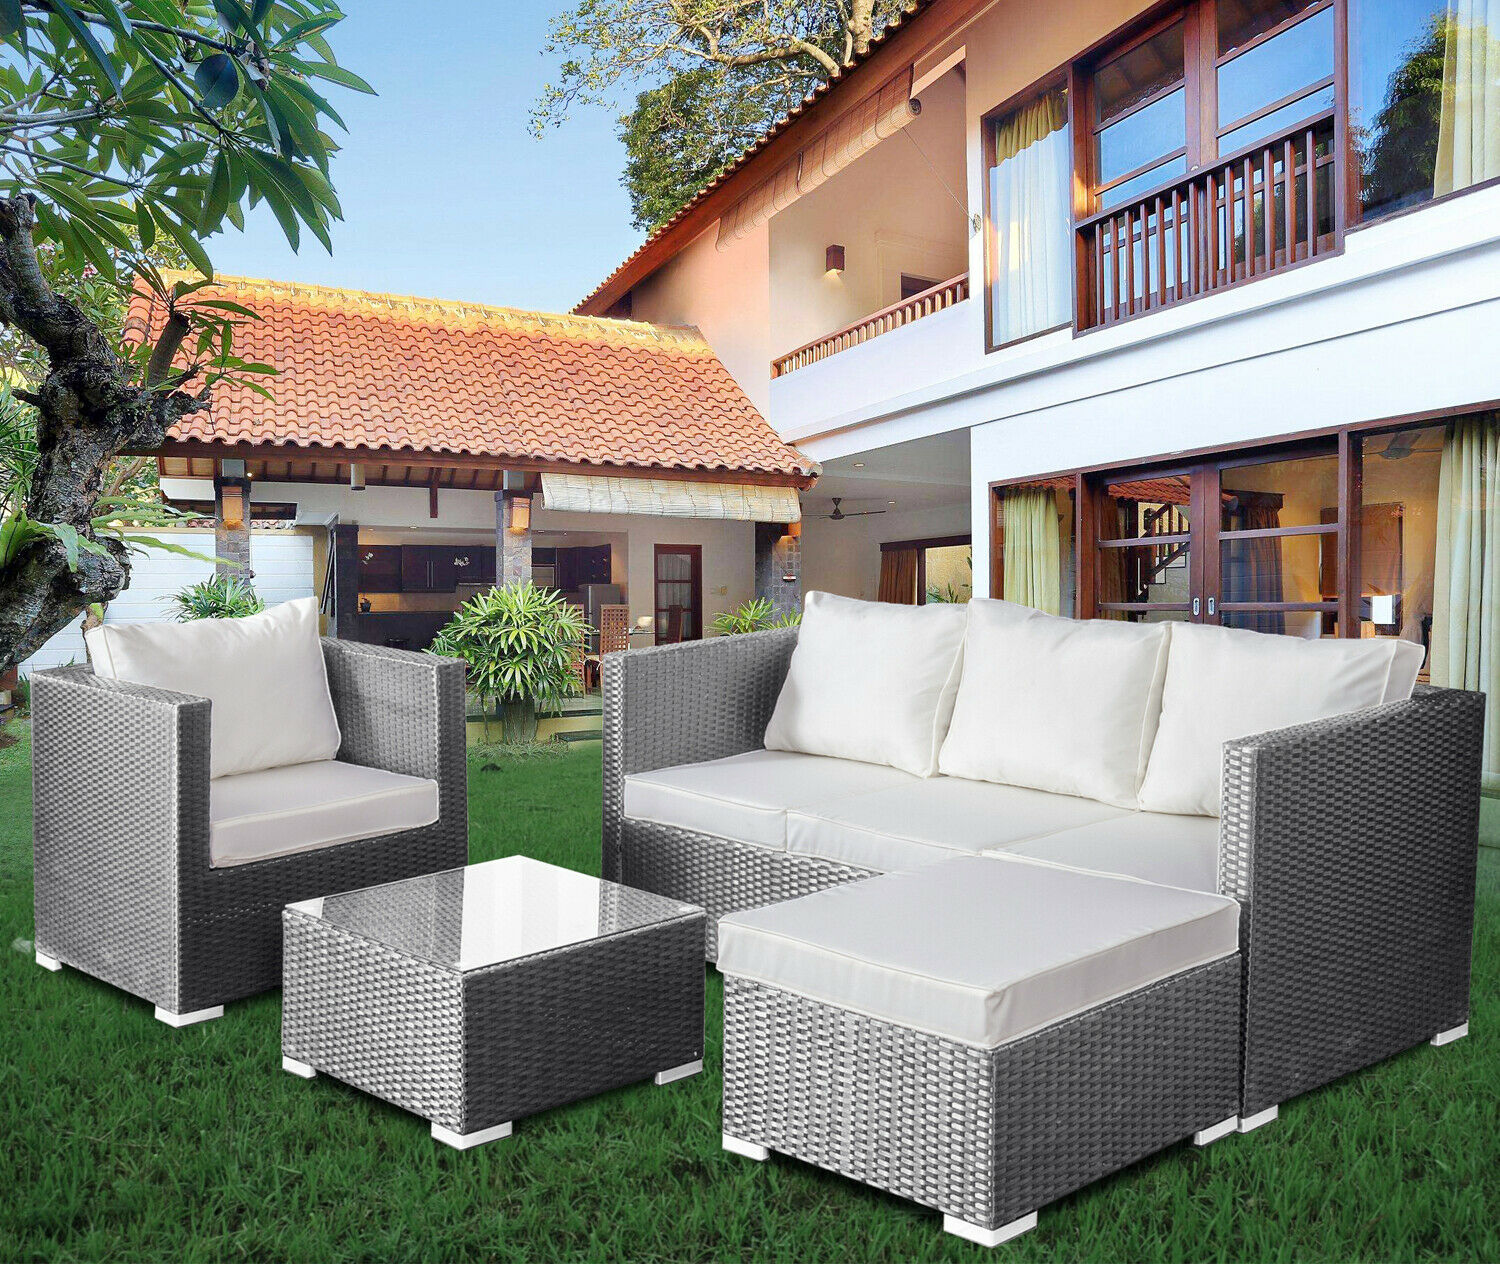 Garden Furniture - Rattan Lounger Sofa Set Garden Furniture Patio Corner Outdoor Conservatory Unit